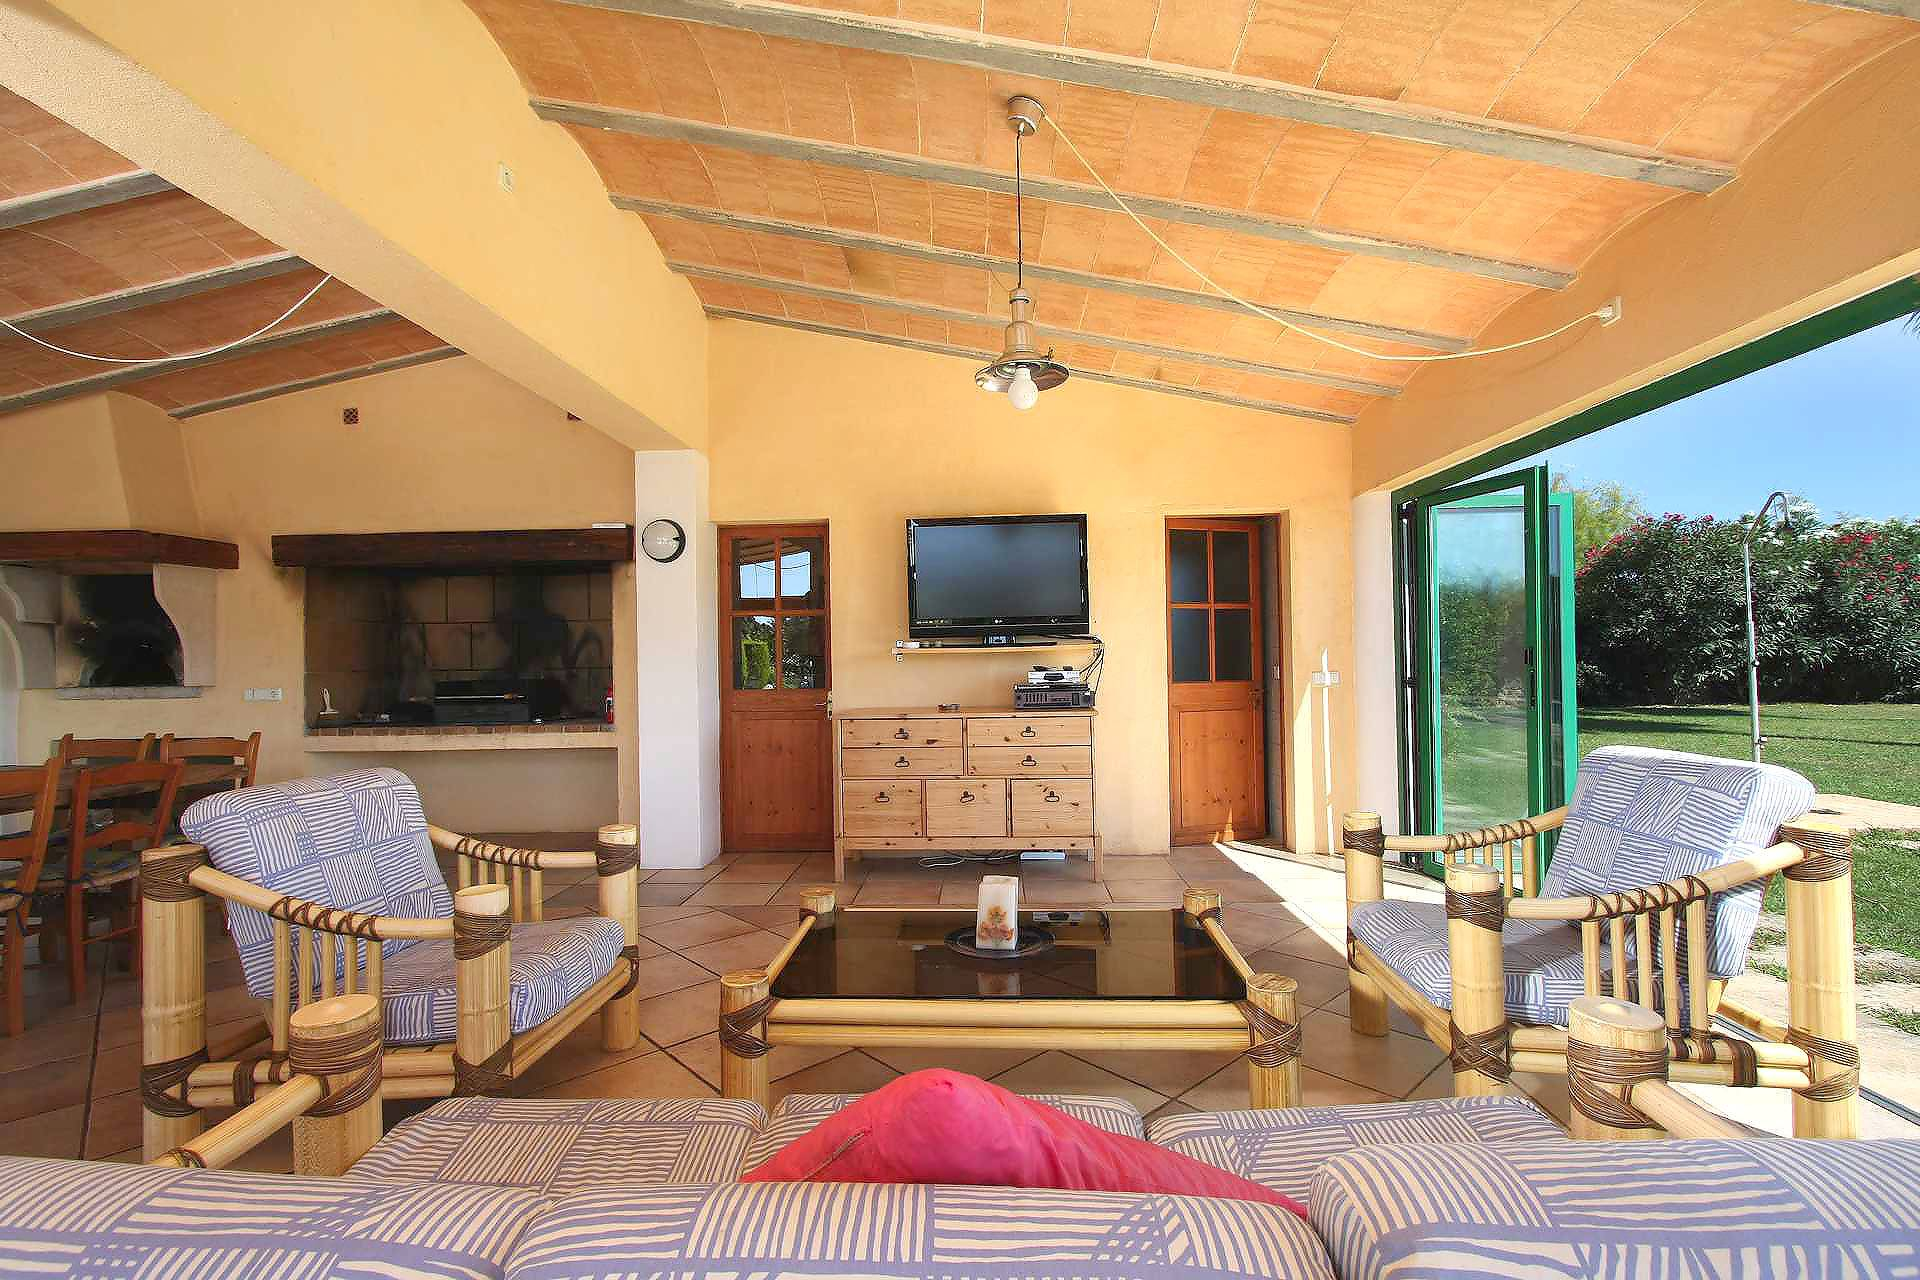 01-47 Spacious Finca Mallorca East Bild 9